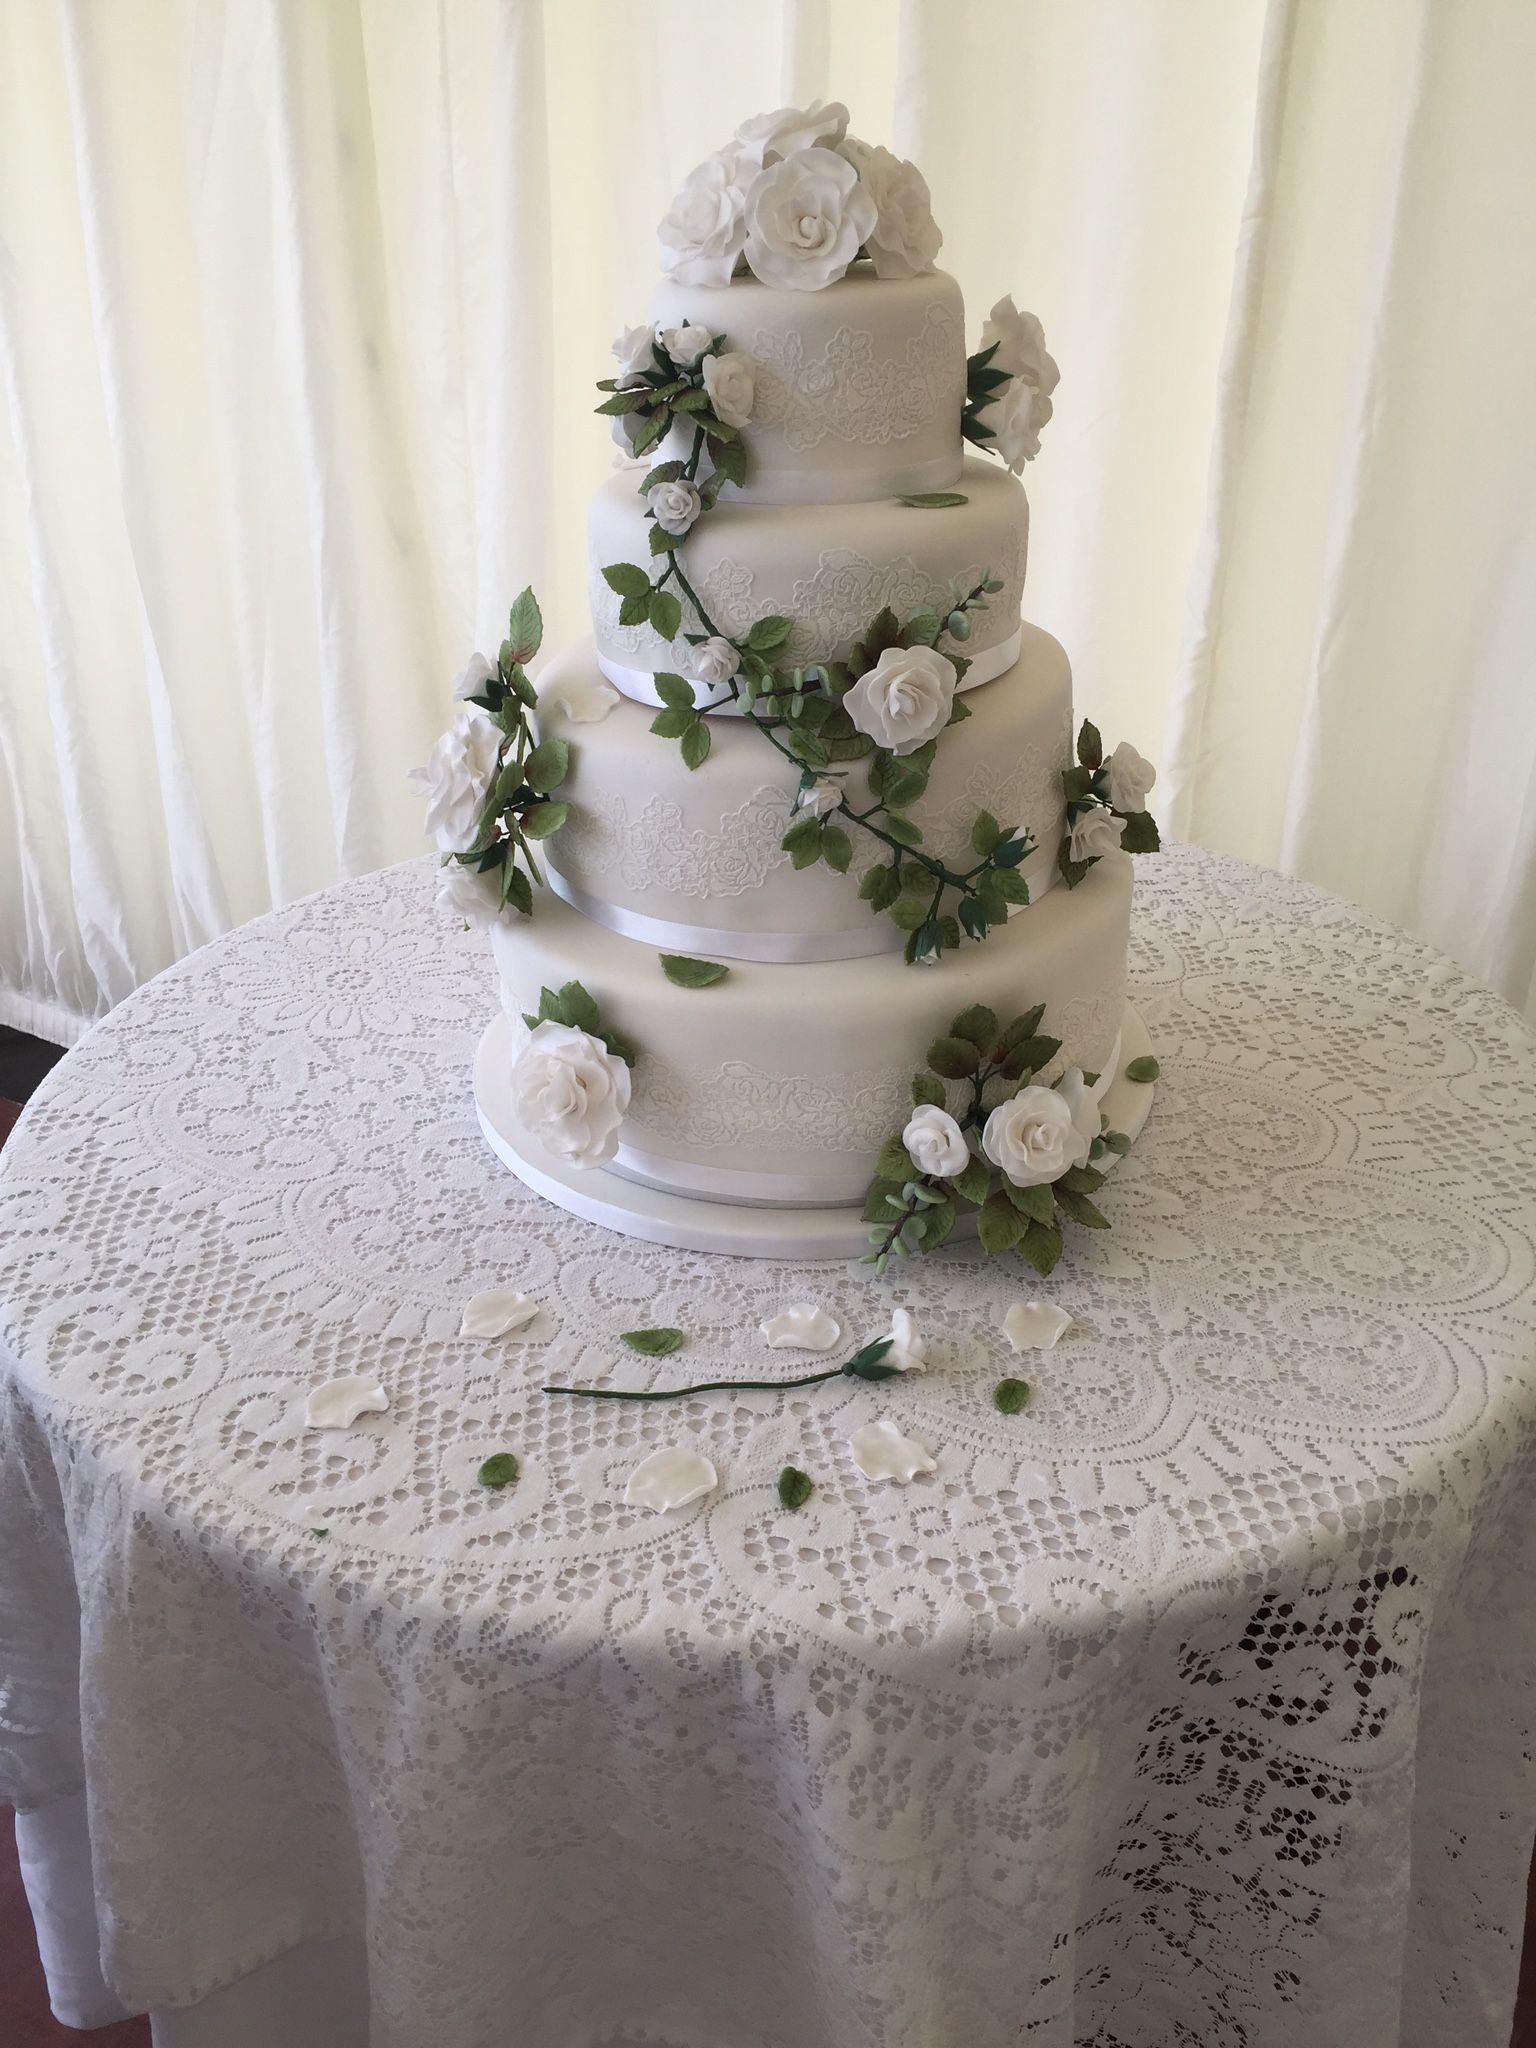 Roses and lace Wedding cake